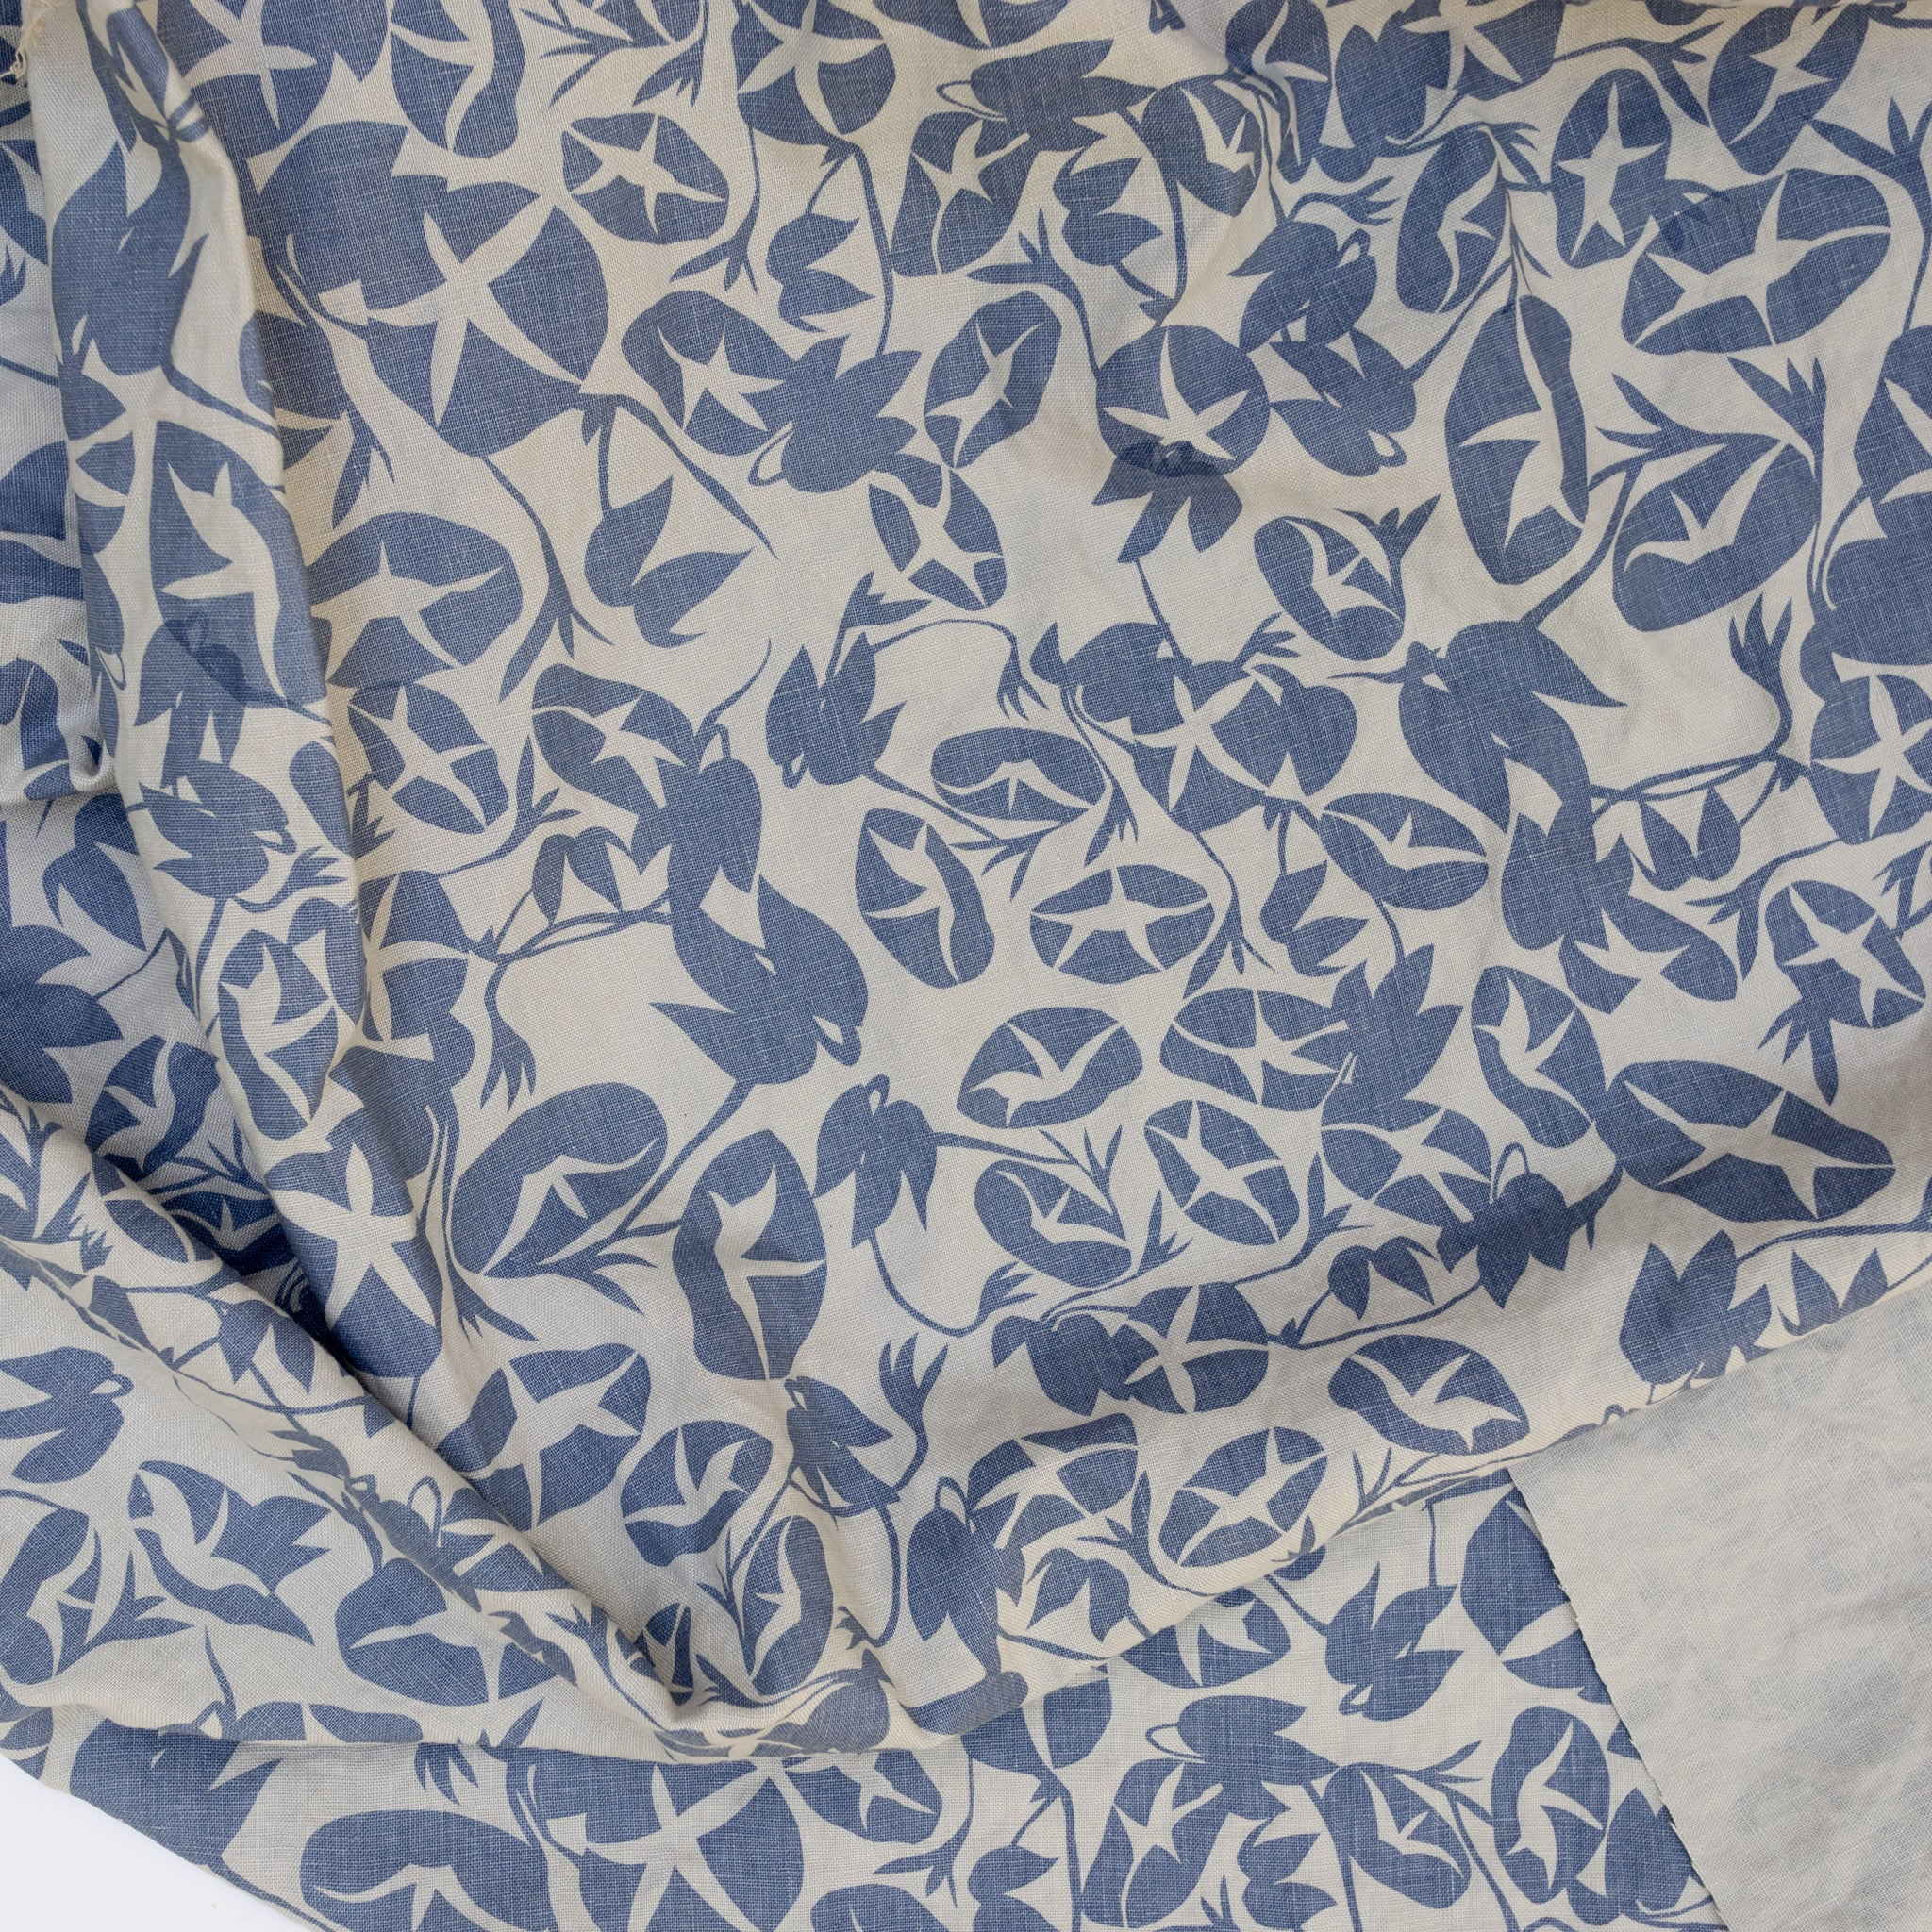 Screen printed fabric yardage with morning glories